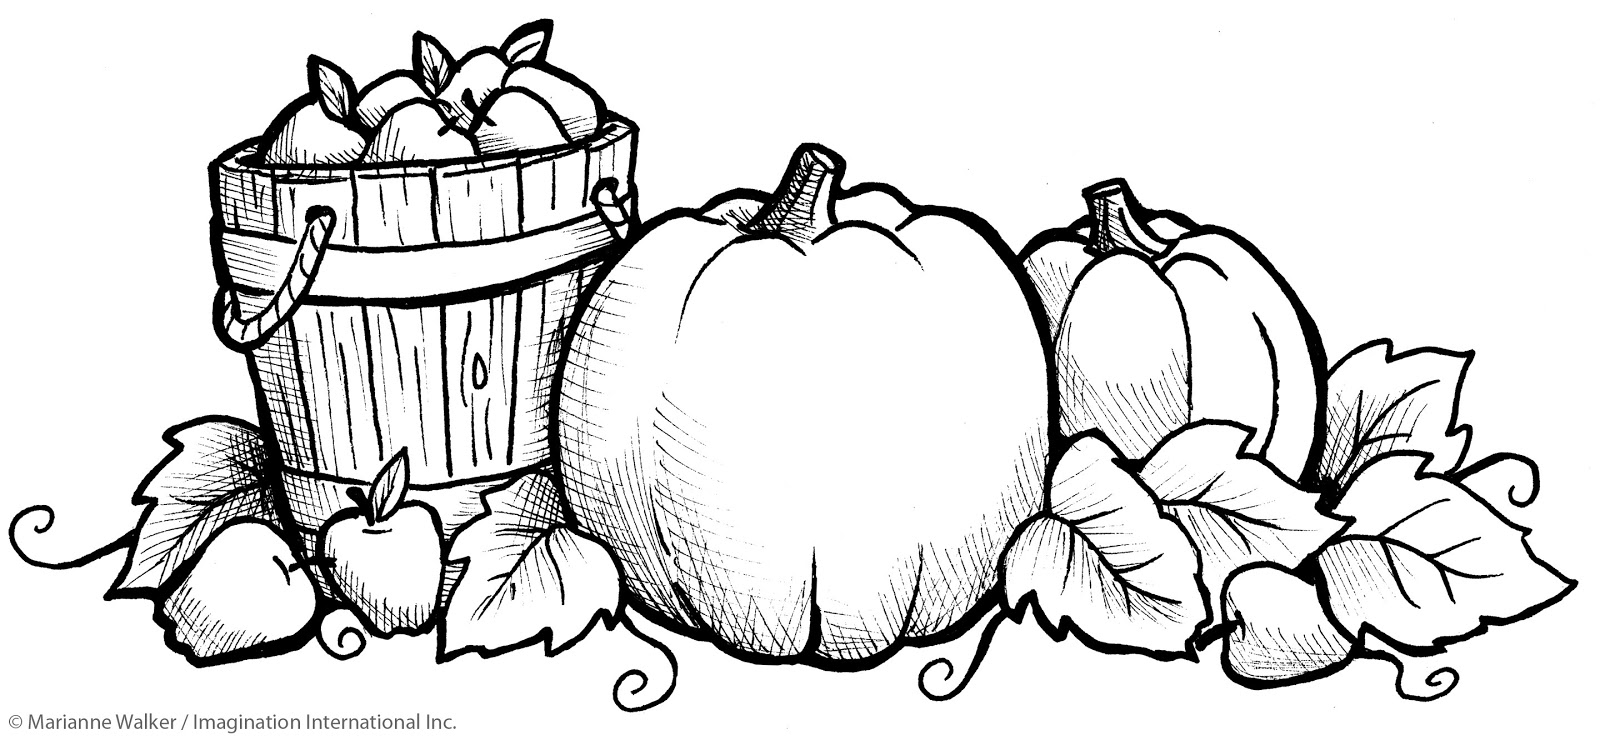 pumpkin and leaves coloring pages original high quality colouring pages for you to print for leaves pages pumpkin and coloring